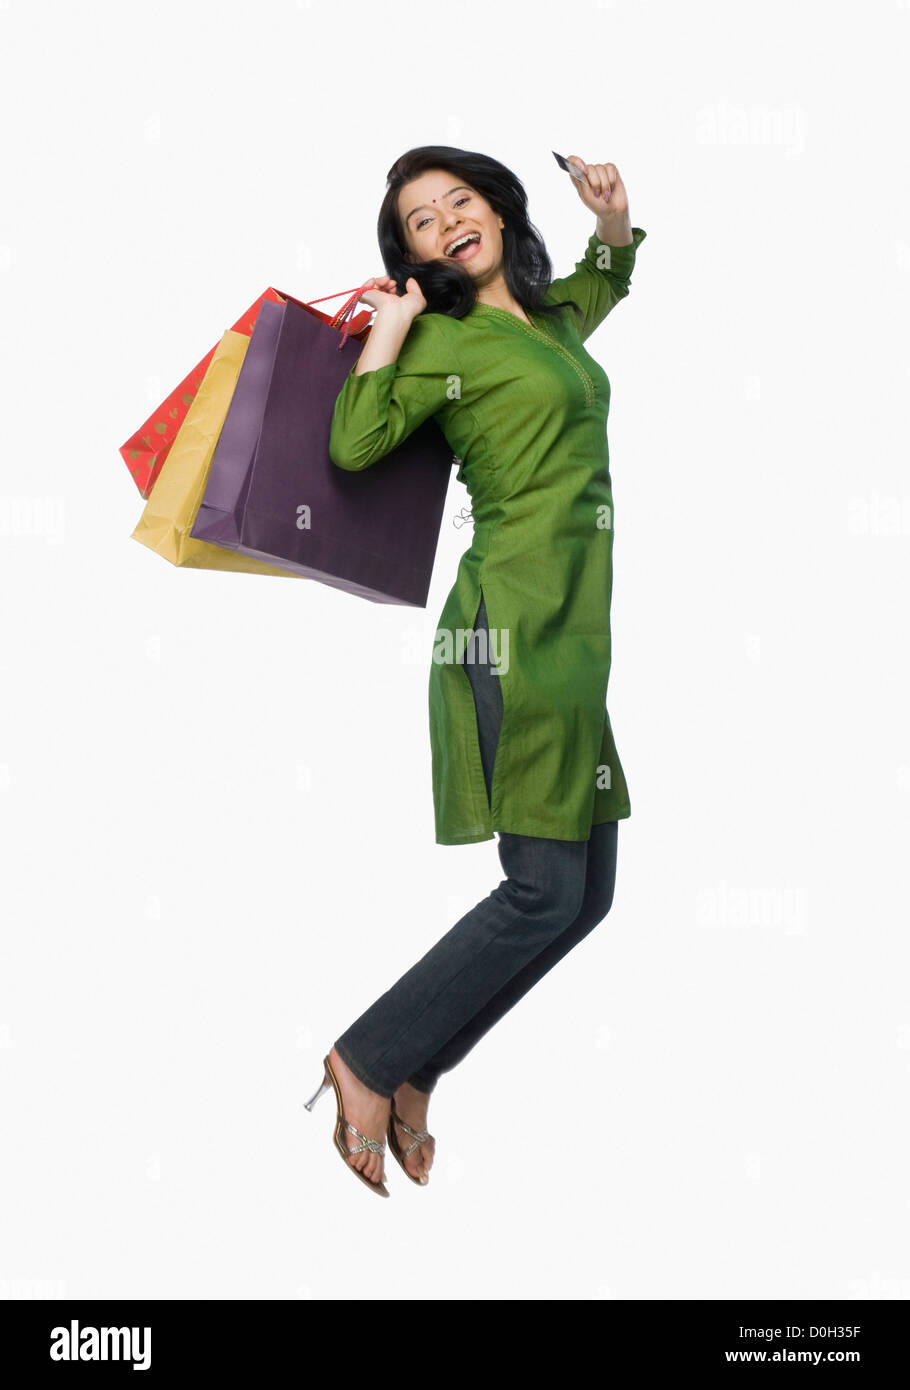 Young woman jumping with shopping bags and a credit card - Stock Image